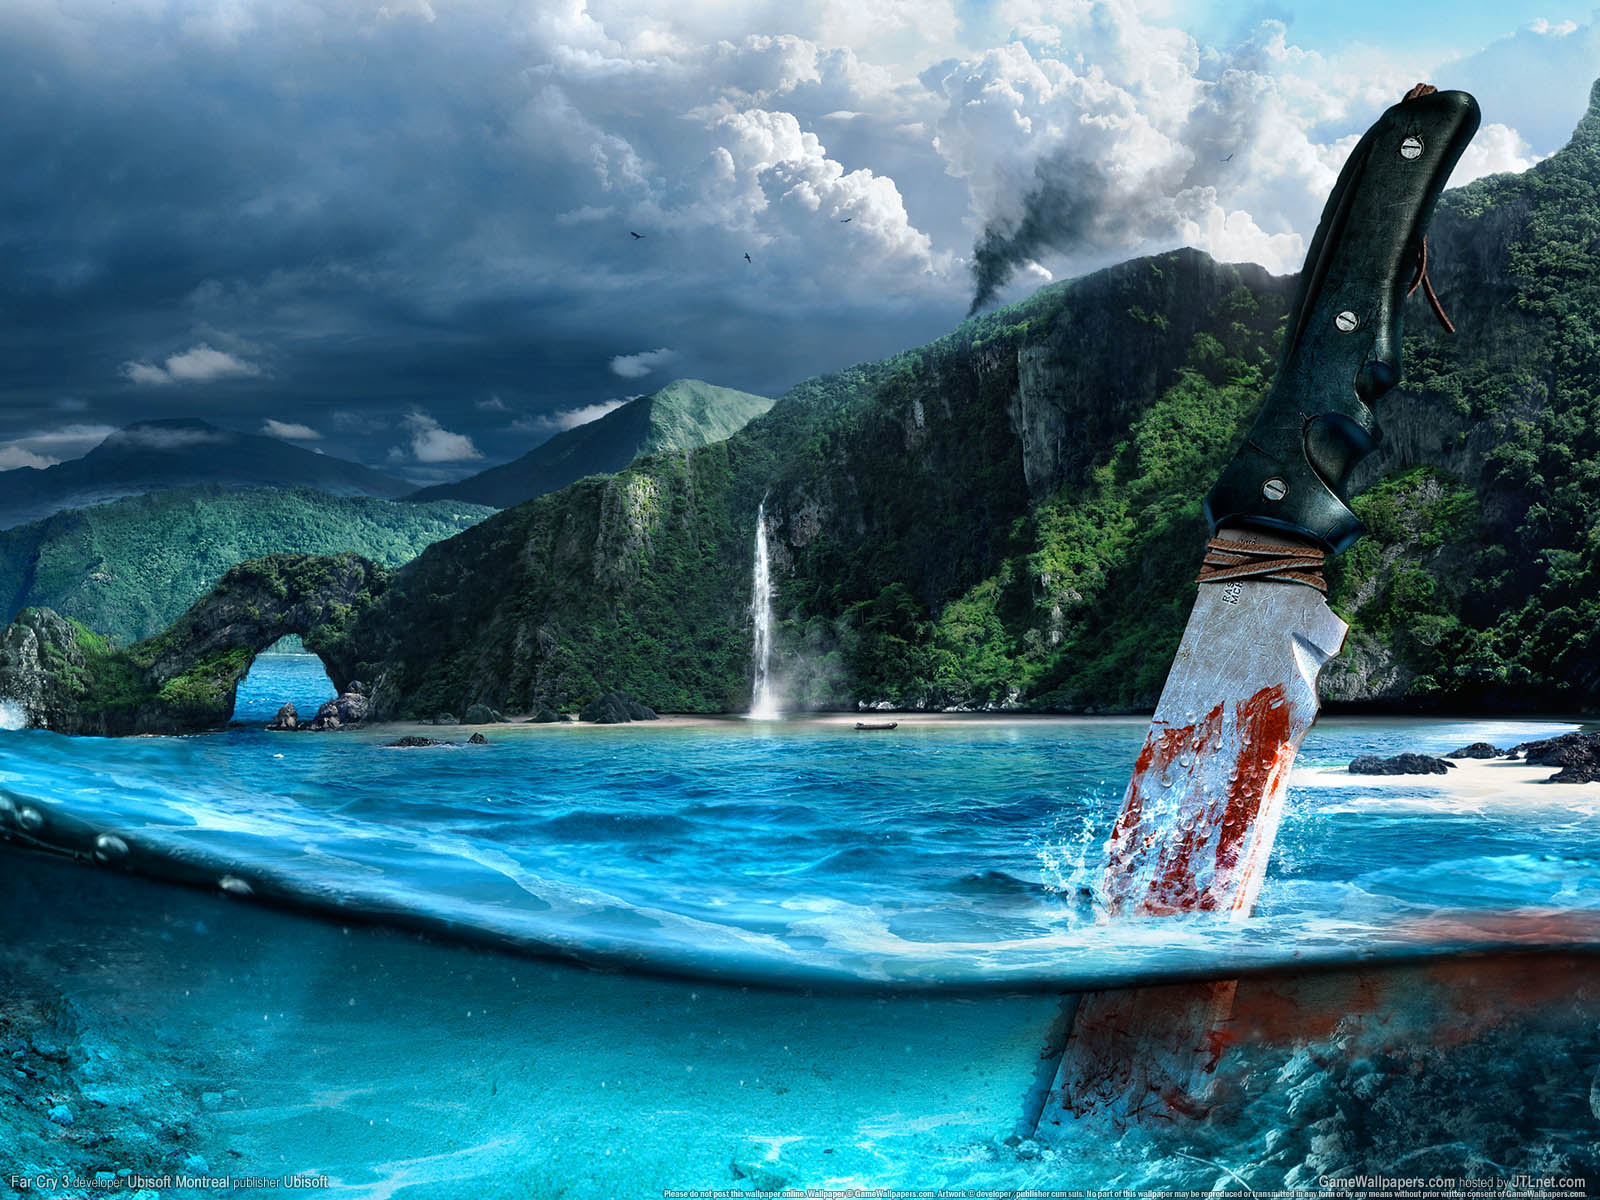 Far Cry 3νmmer=01 achtergrond  1600x1200